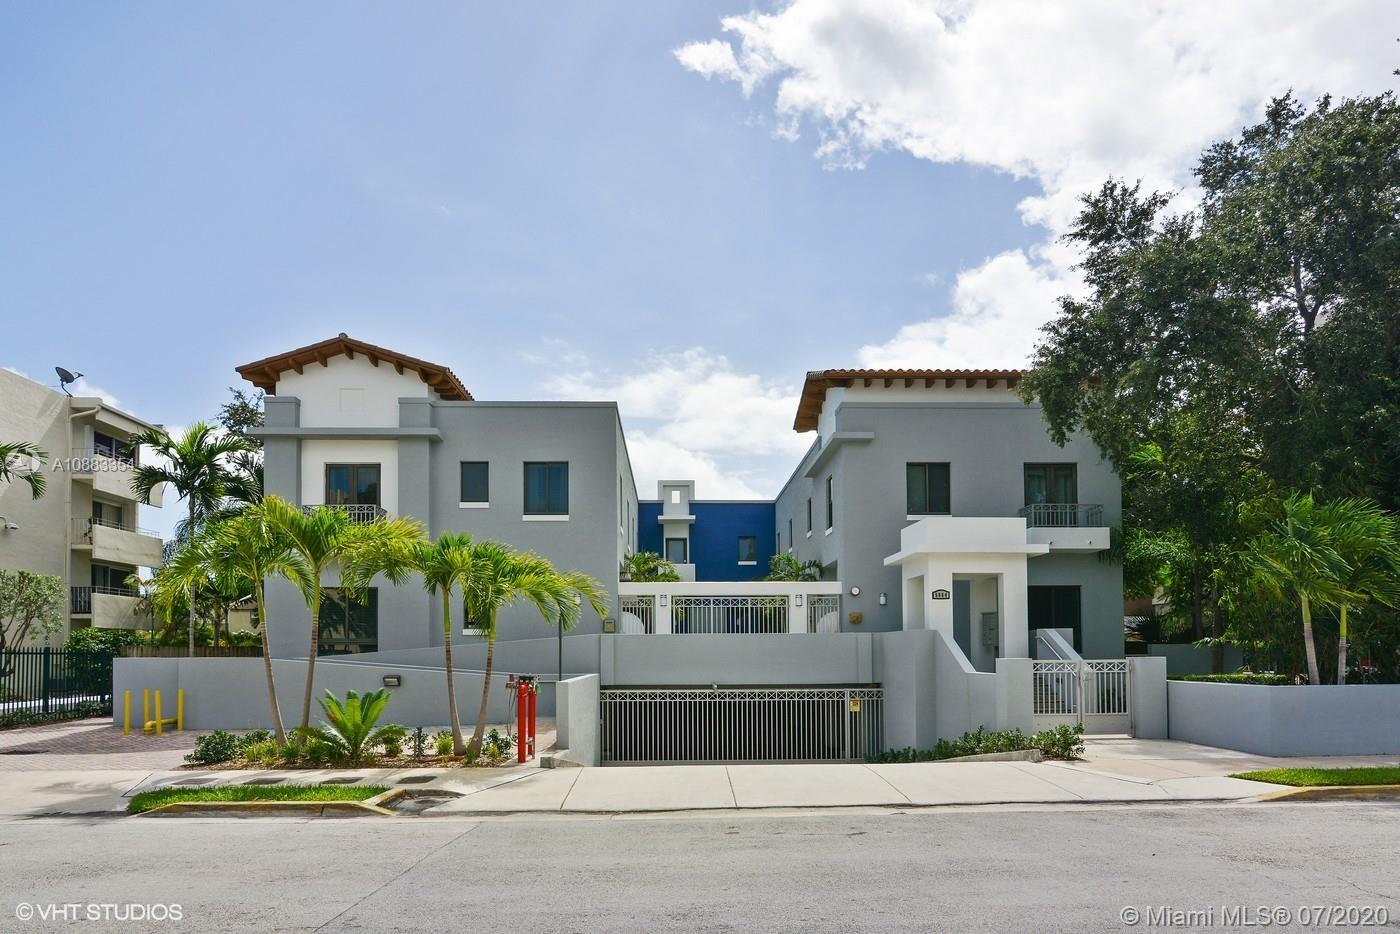 Live in the heart of South Miami. This two bedroom/2.5 bath townhome is within walking distance to all the restaurants, bars, movie theater and more the area has to offer. The unit is a three story unit where the Living/Dining/Kitchen/Half Bath are on the main level. The two car garage is on the level below and the Two Bedrooms/Two Baths are on the upper floor. This is an excellent Pied a Terre!